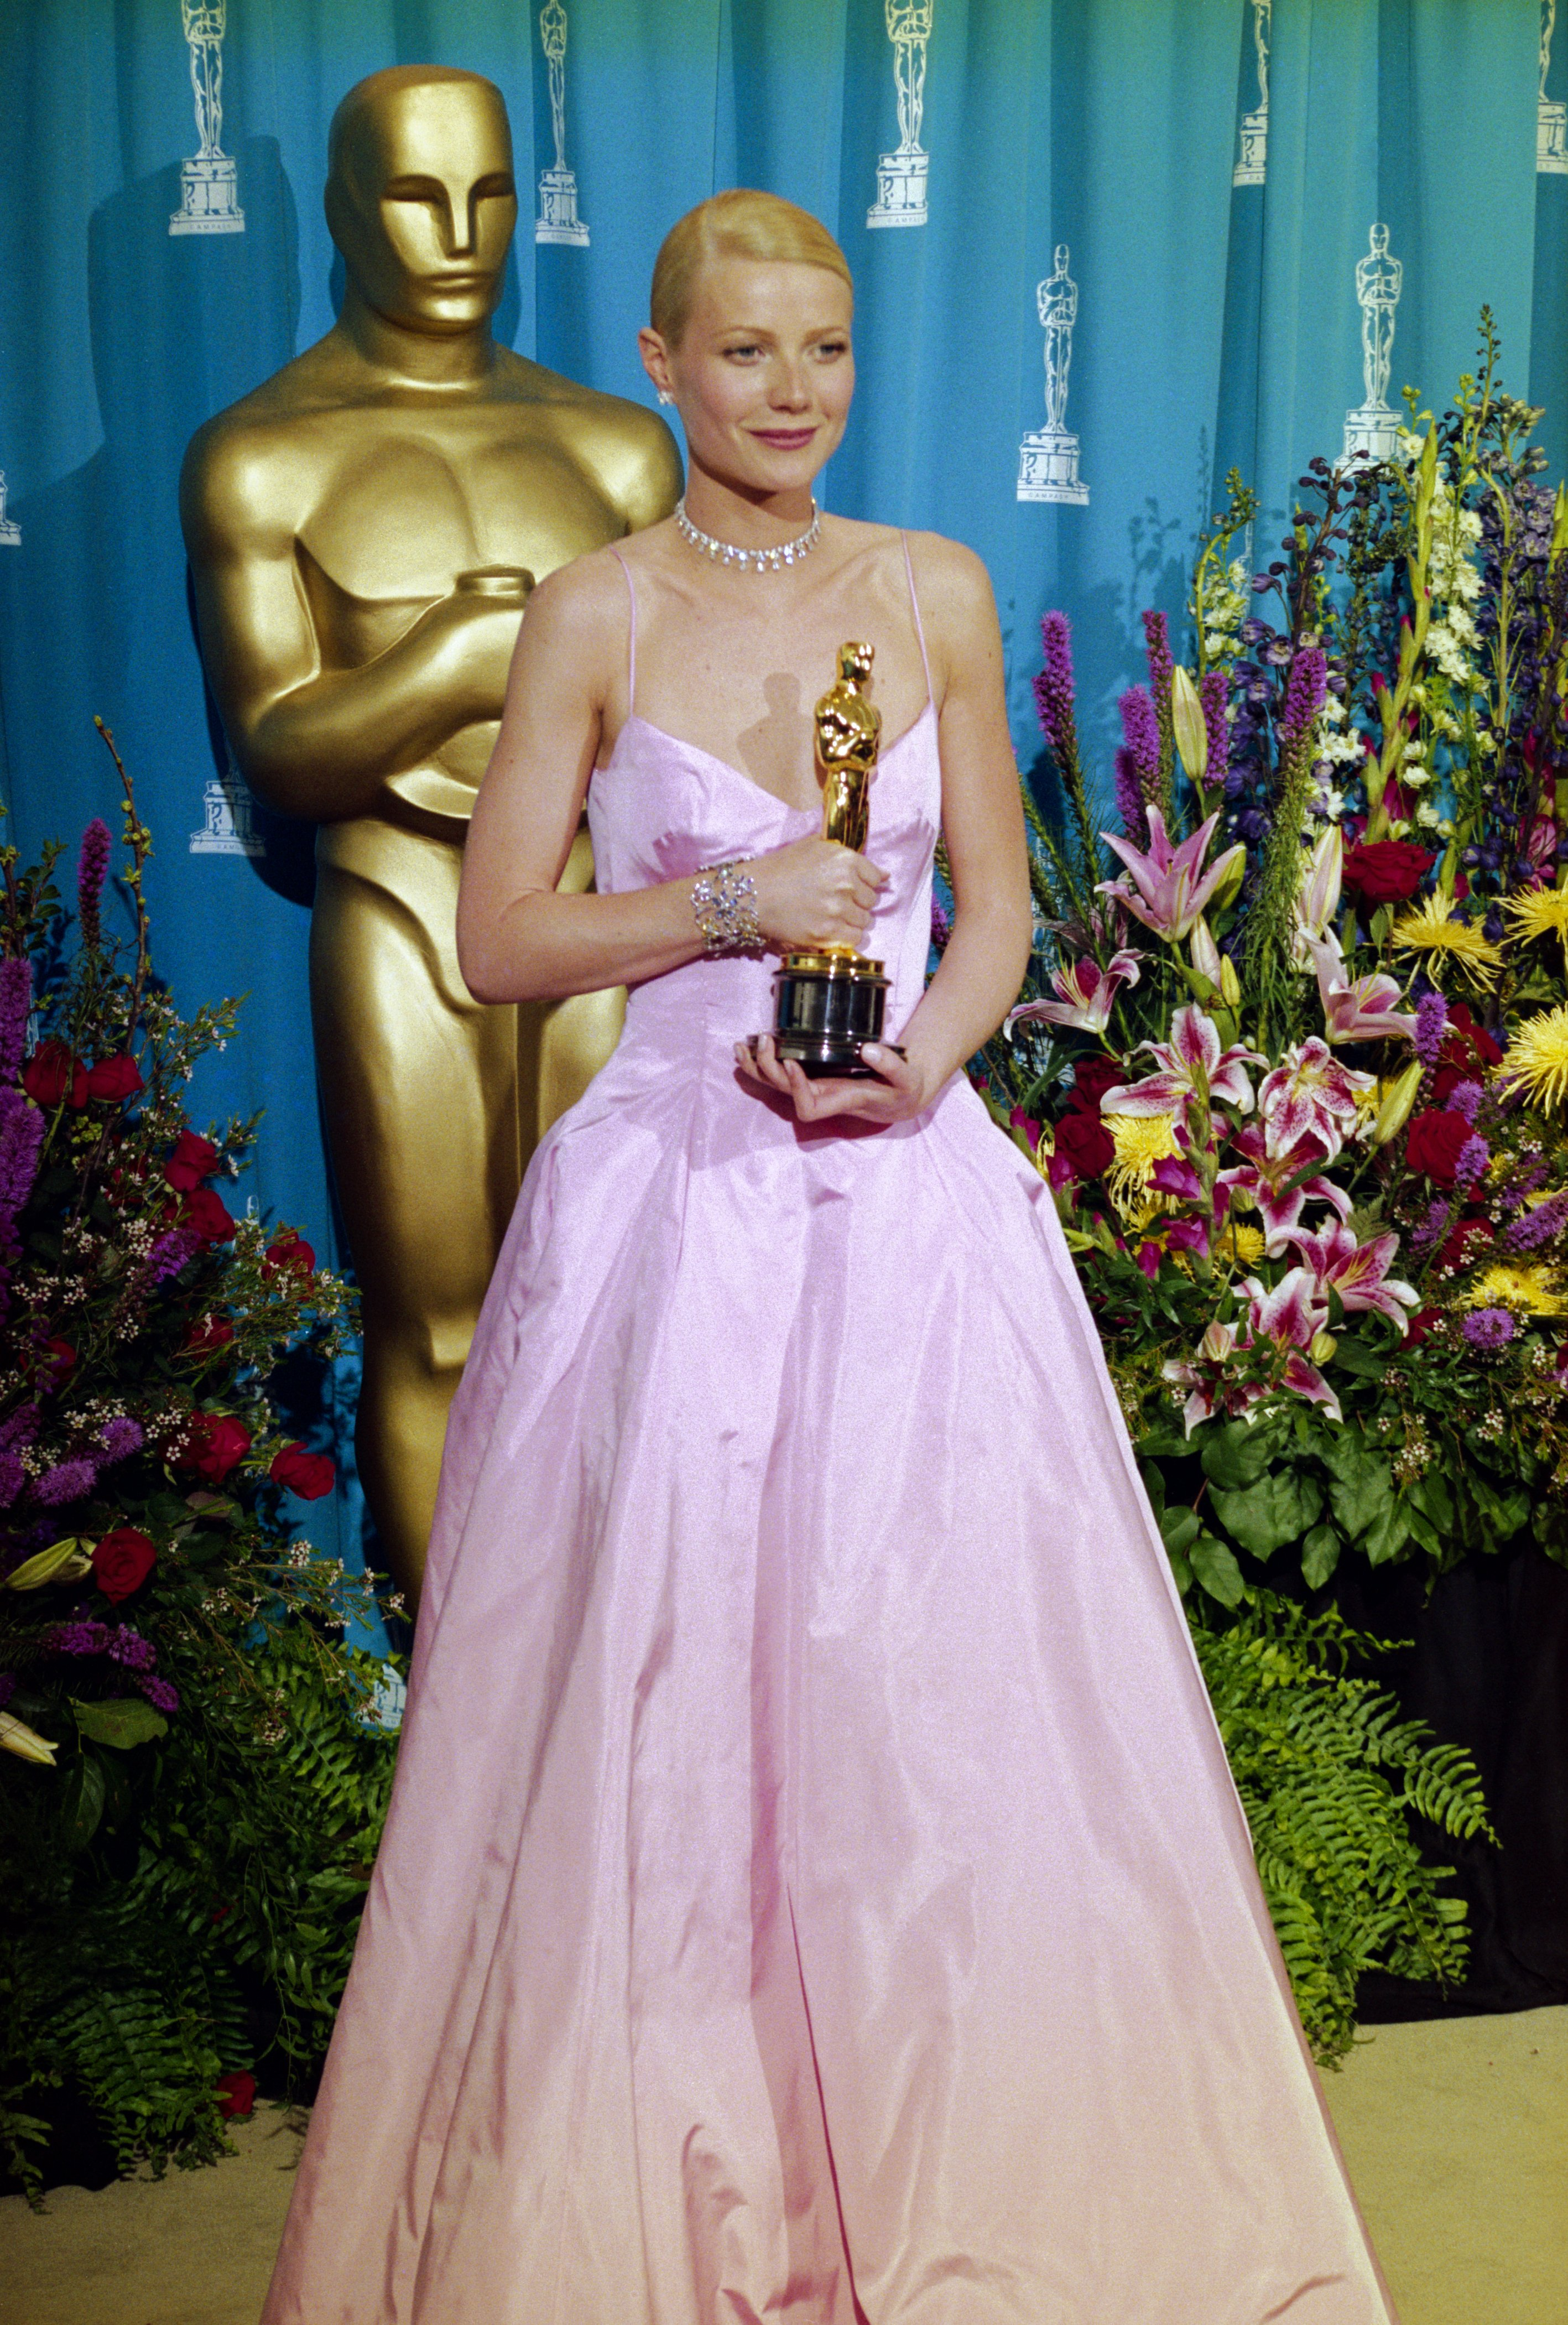 Image Credits: Getty Images / Steve Starr / Corbis | Best Actress winner for Shakespeare in Love, Gwyneth Paltrow holds onto her Oscar at the 71st Annual Academy Awards Ceremony.